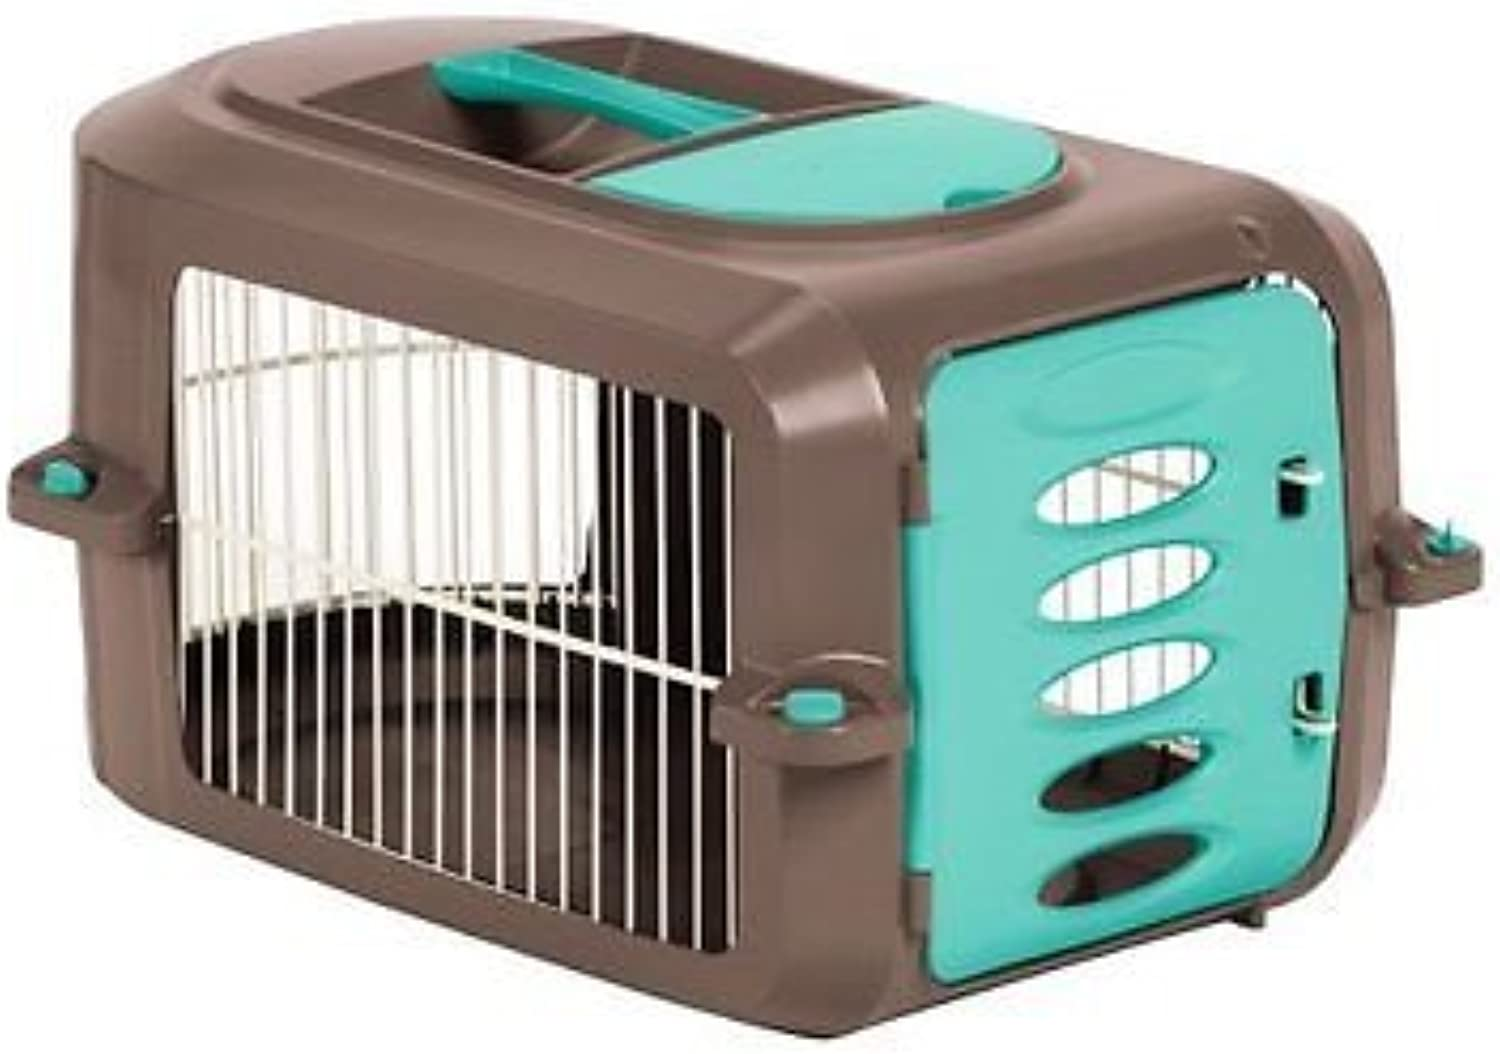 Generic ty Cat Do Travel Safety Cat Dog Set Water Bowl Safety Small Pets Carrier er Bowl Tr Security Cat Dog Set ier Cage Food Wa Cage Food